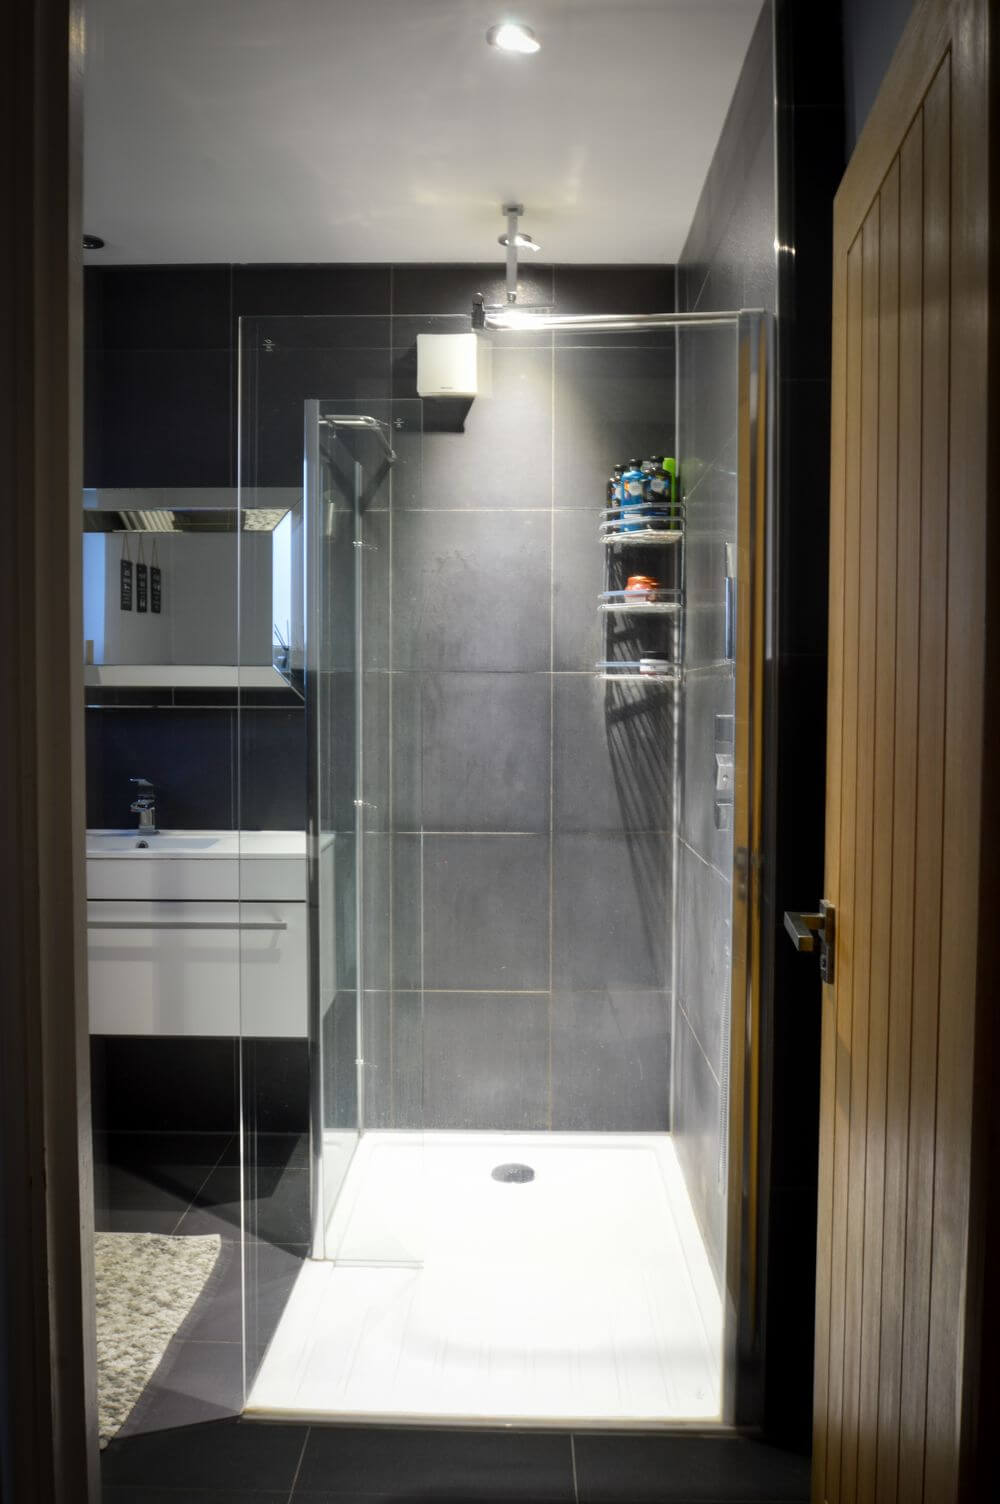 bathroom-lighting-and-electrics-installed-by-o'briens-electrical-ltd (5)